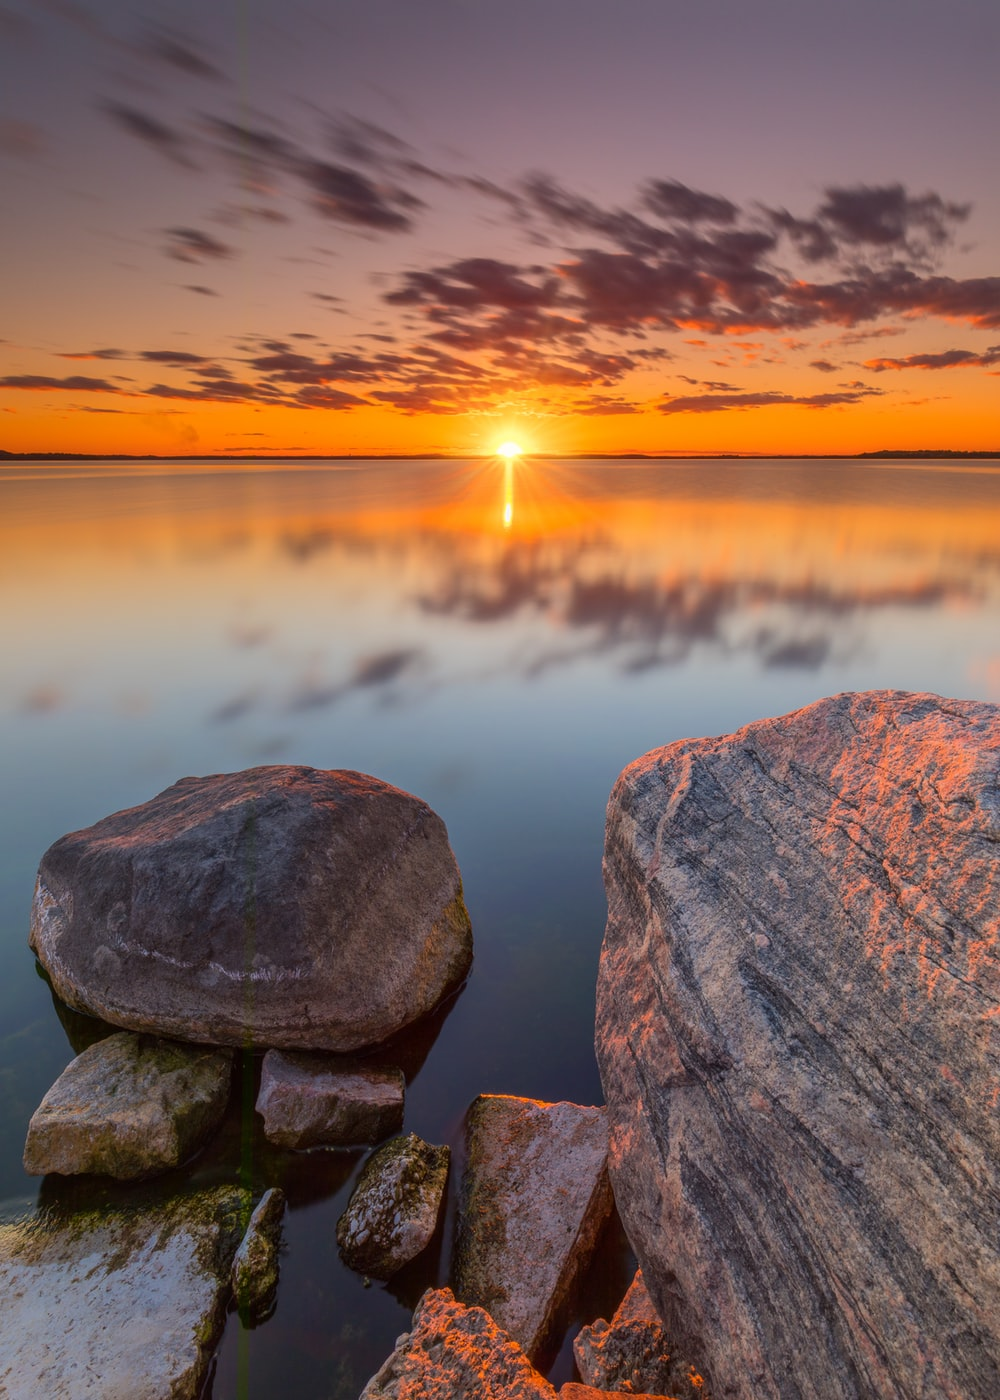 gray and brown rock formation near body of water during sunset